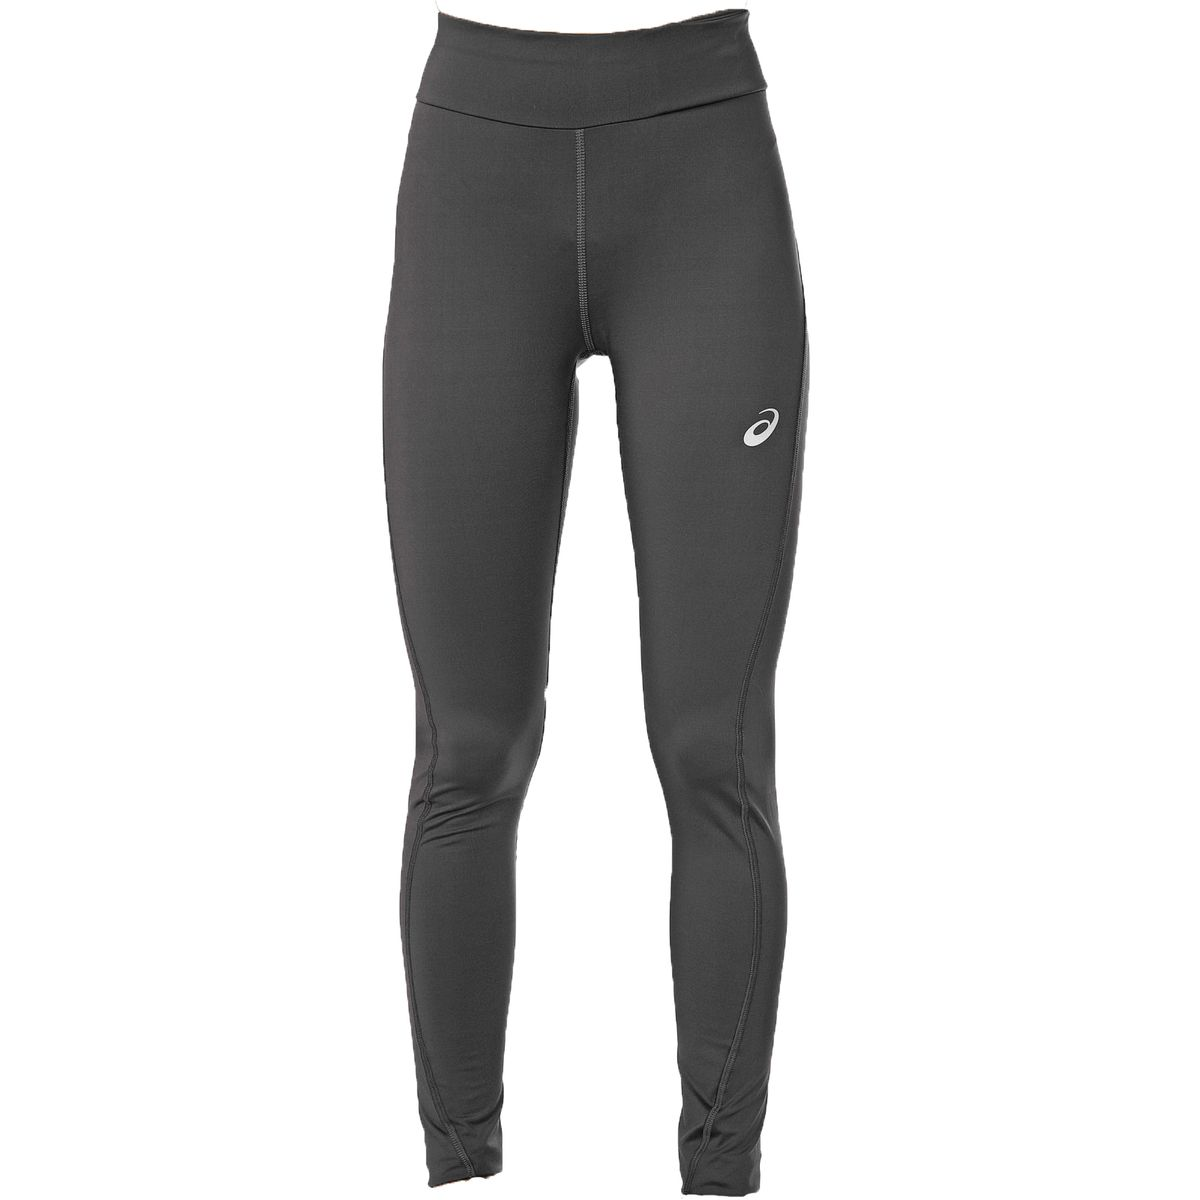 Calca-Asics-Tight---Feminino---Cinza